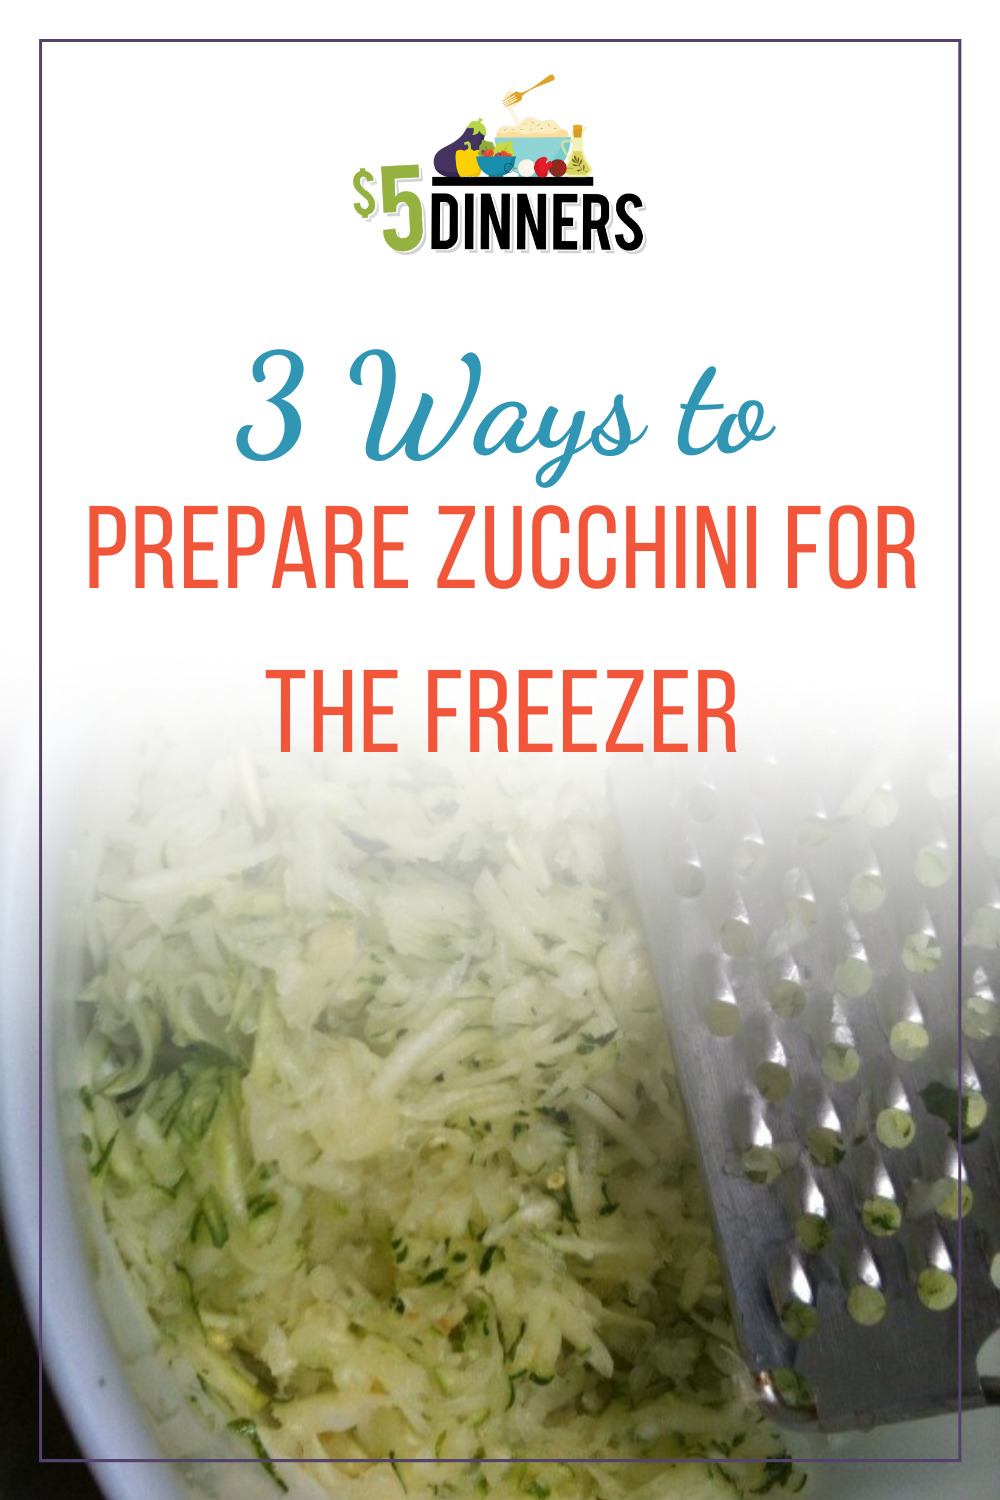 how to process and prepare zucchini for freezer